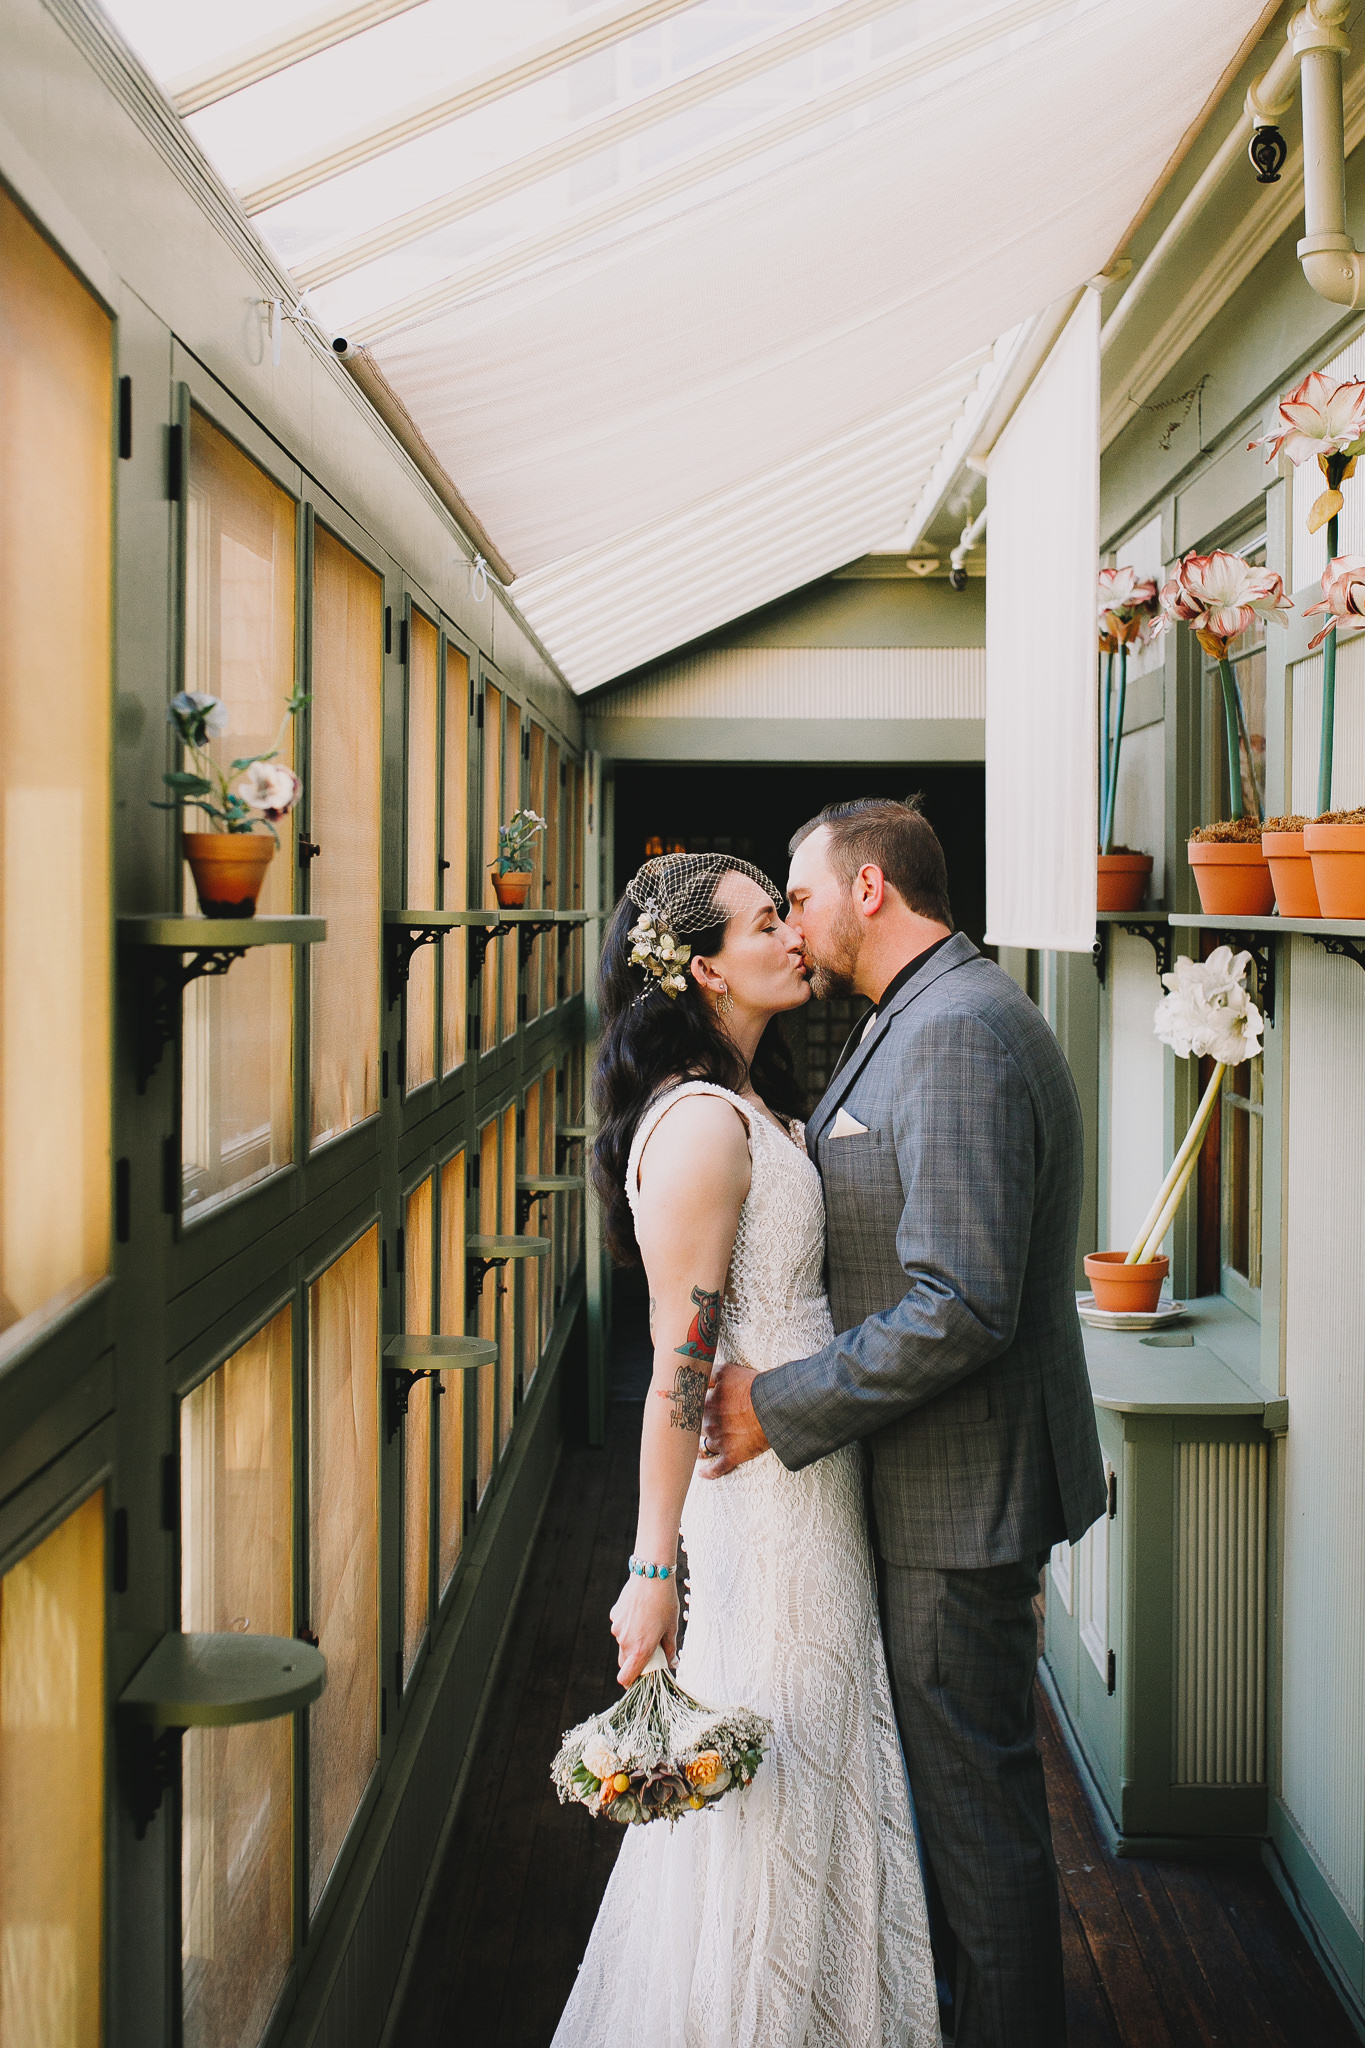 Archer Inspired Photography Sara and Aaron Winchester Mystery House NorCal San Jose California Wedding Photographer-285.jpg